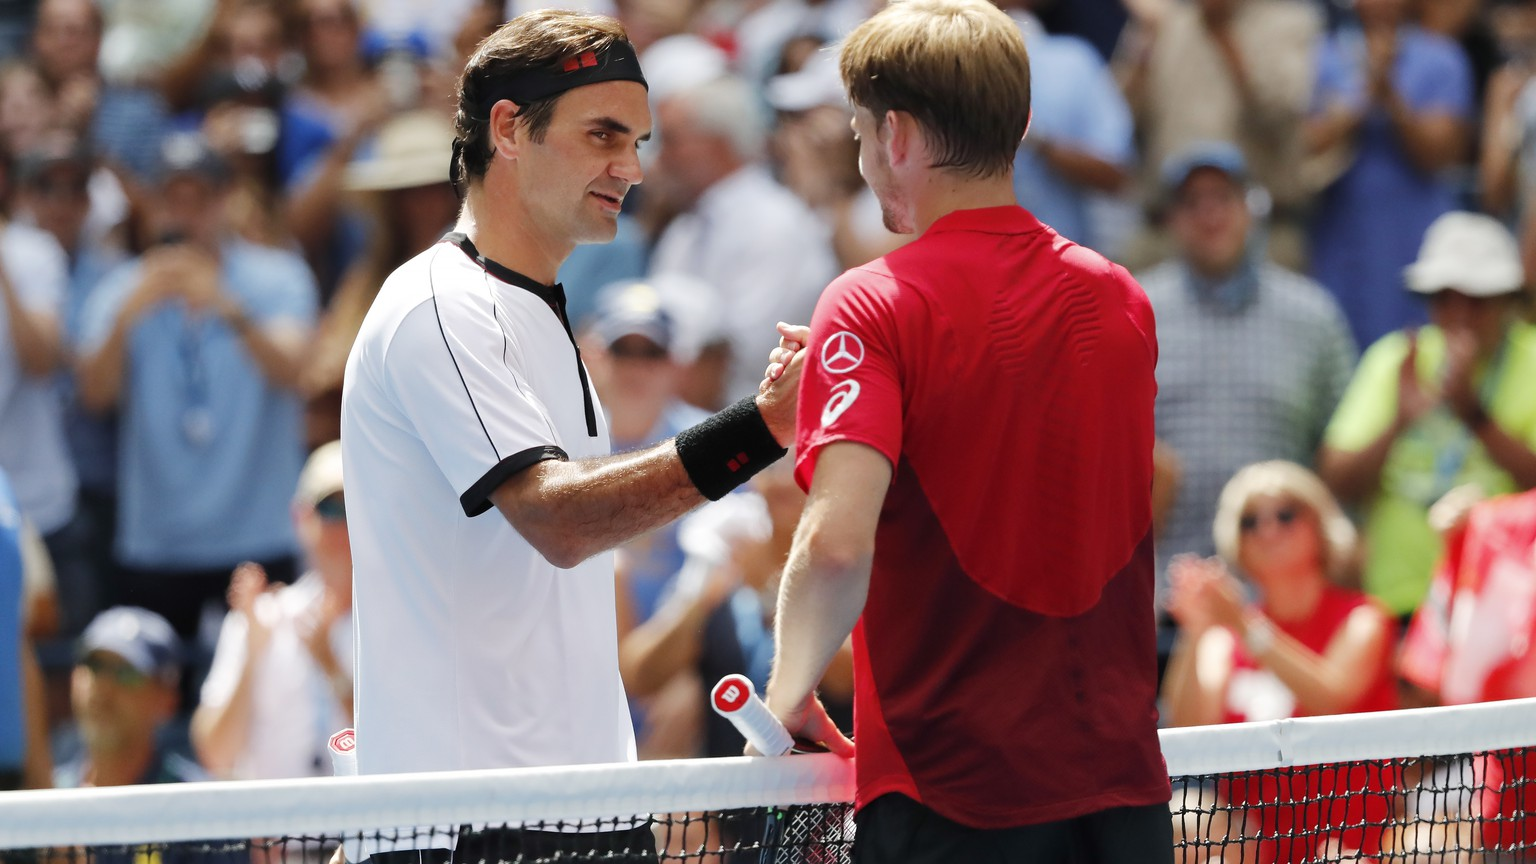 epa07811009 Roger Federer of Switzerland and David Goffin of Belgium after their match on the seventh day of the US Open Tennis Championships the USTA National Tennis Center in Flushing Meadows, New York, USA, 01 September 2019. The US Open runs from 26 August through 08 September.  EPA/JOHN G. MABANGLO